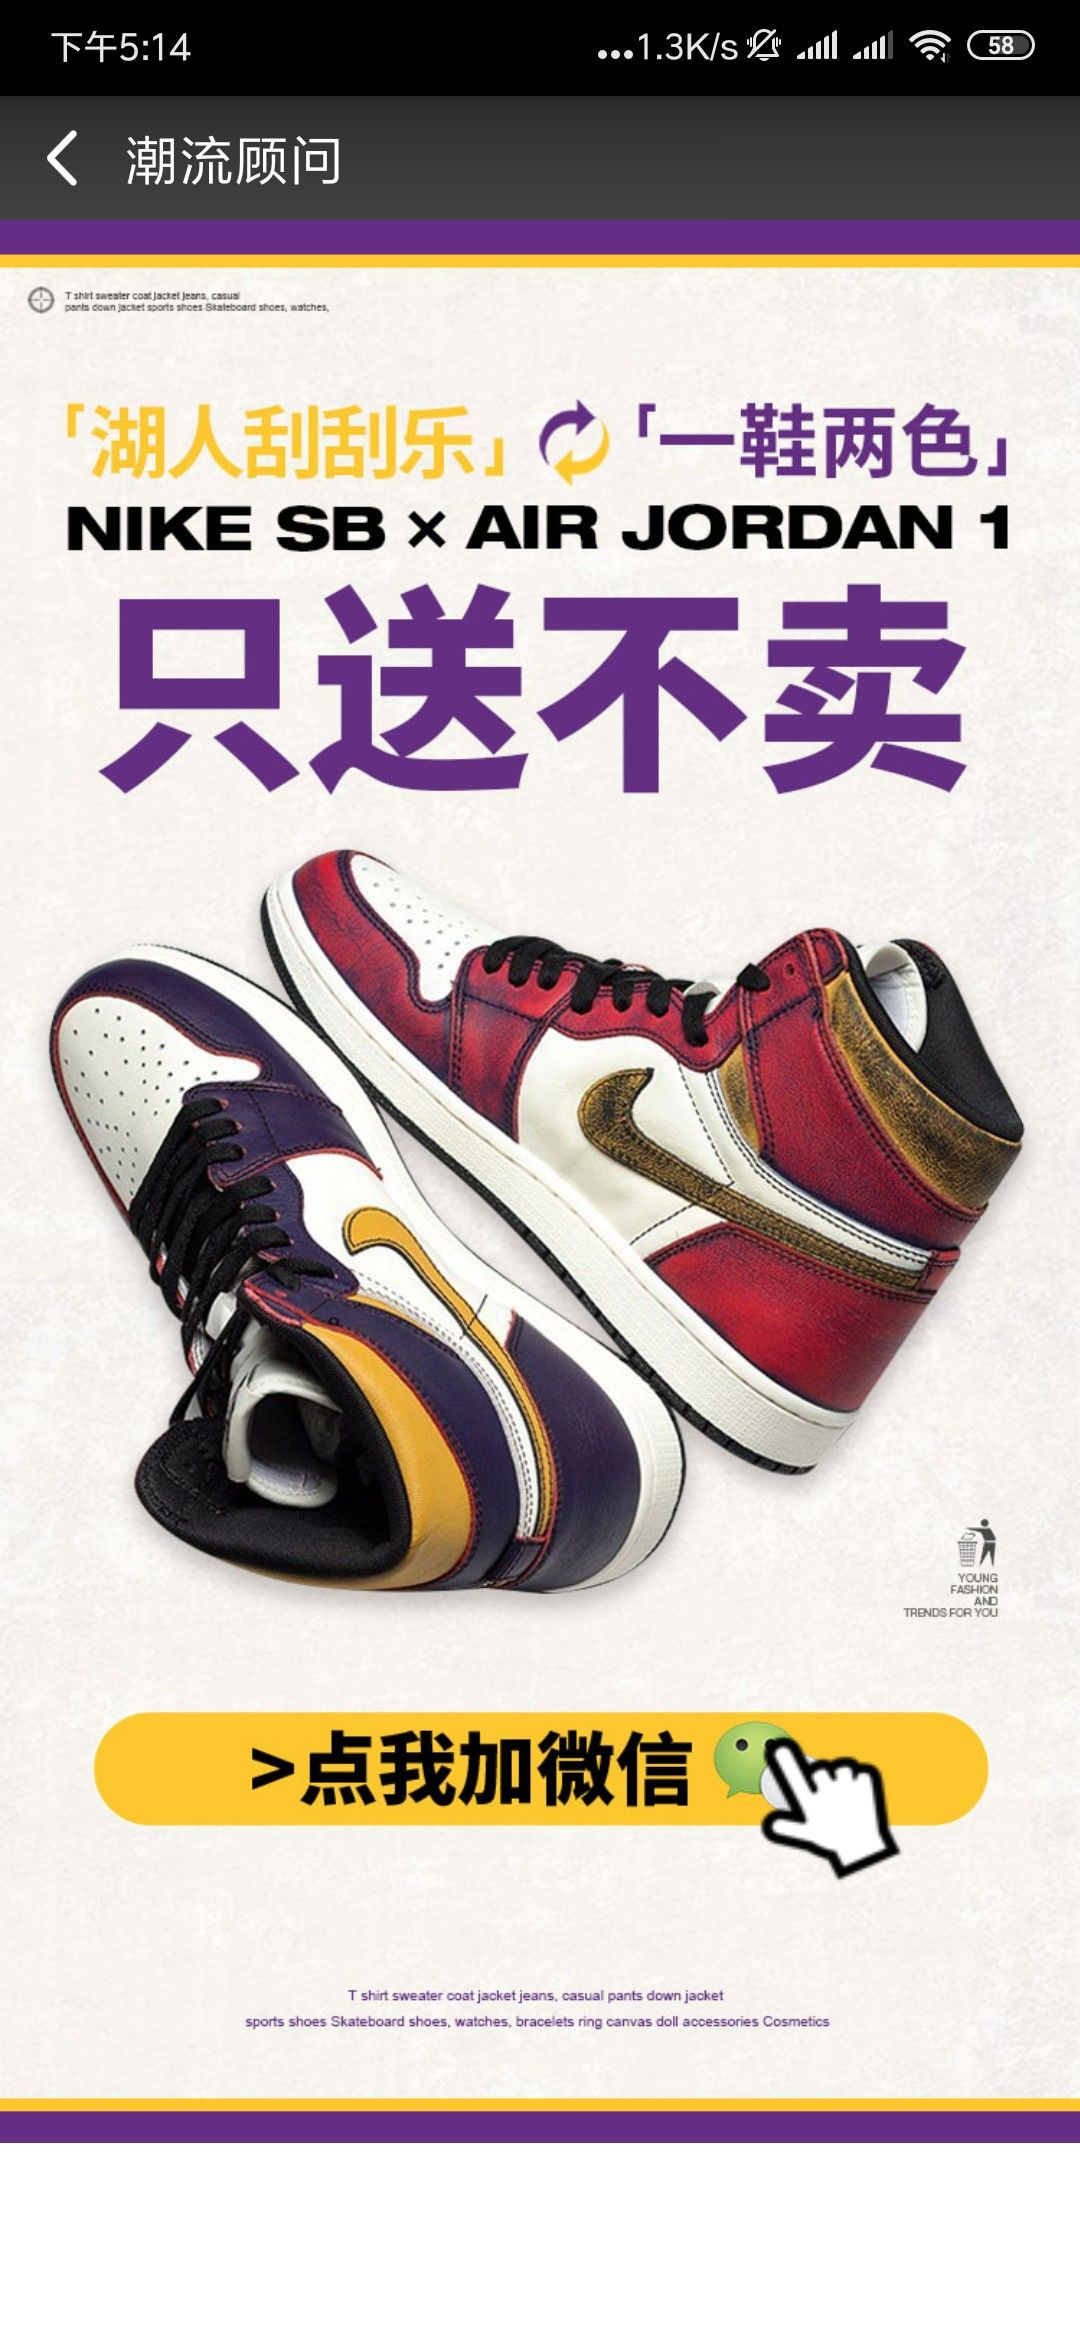 Pin by xiaozeng on 新人红包 (With images) Air jordans, Nike